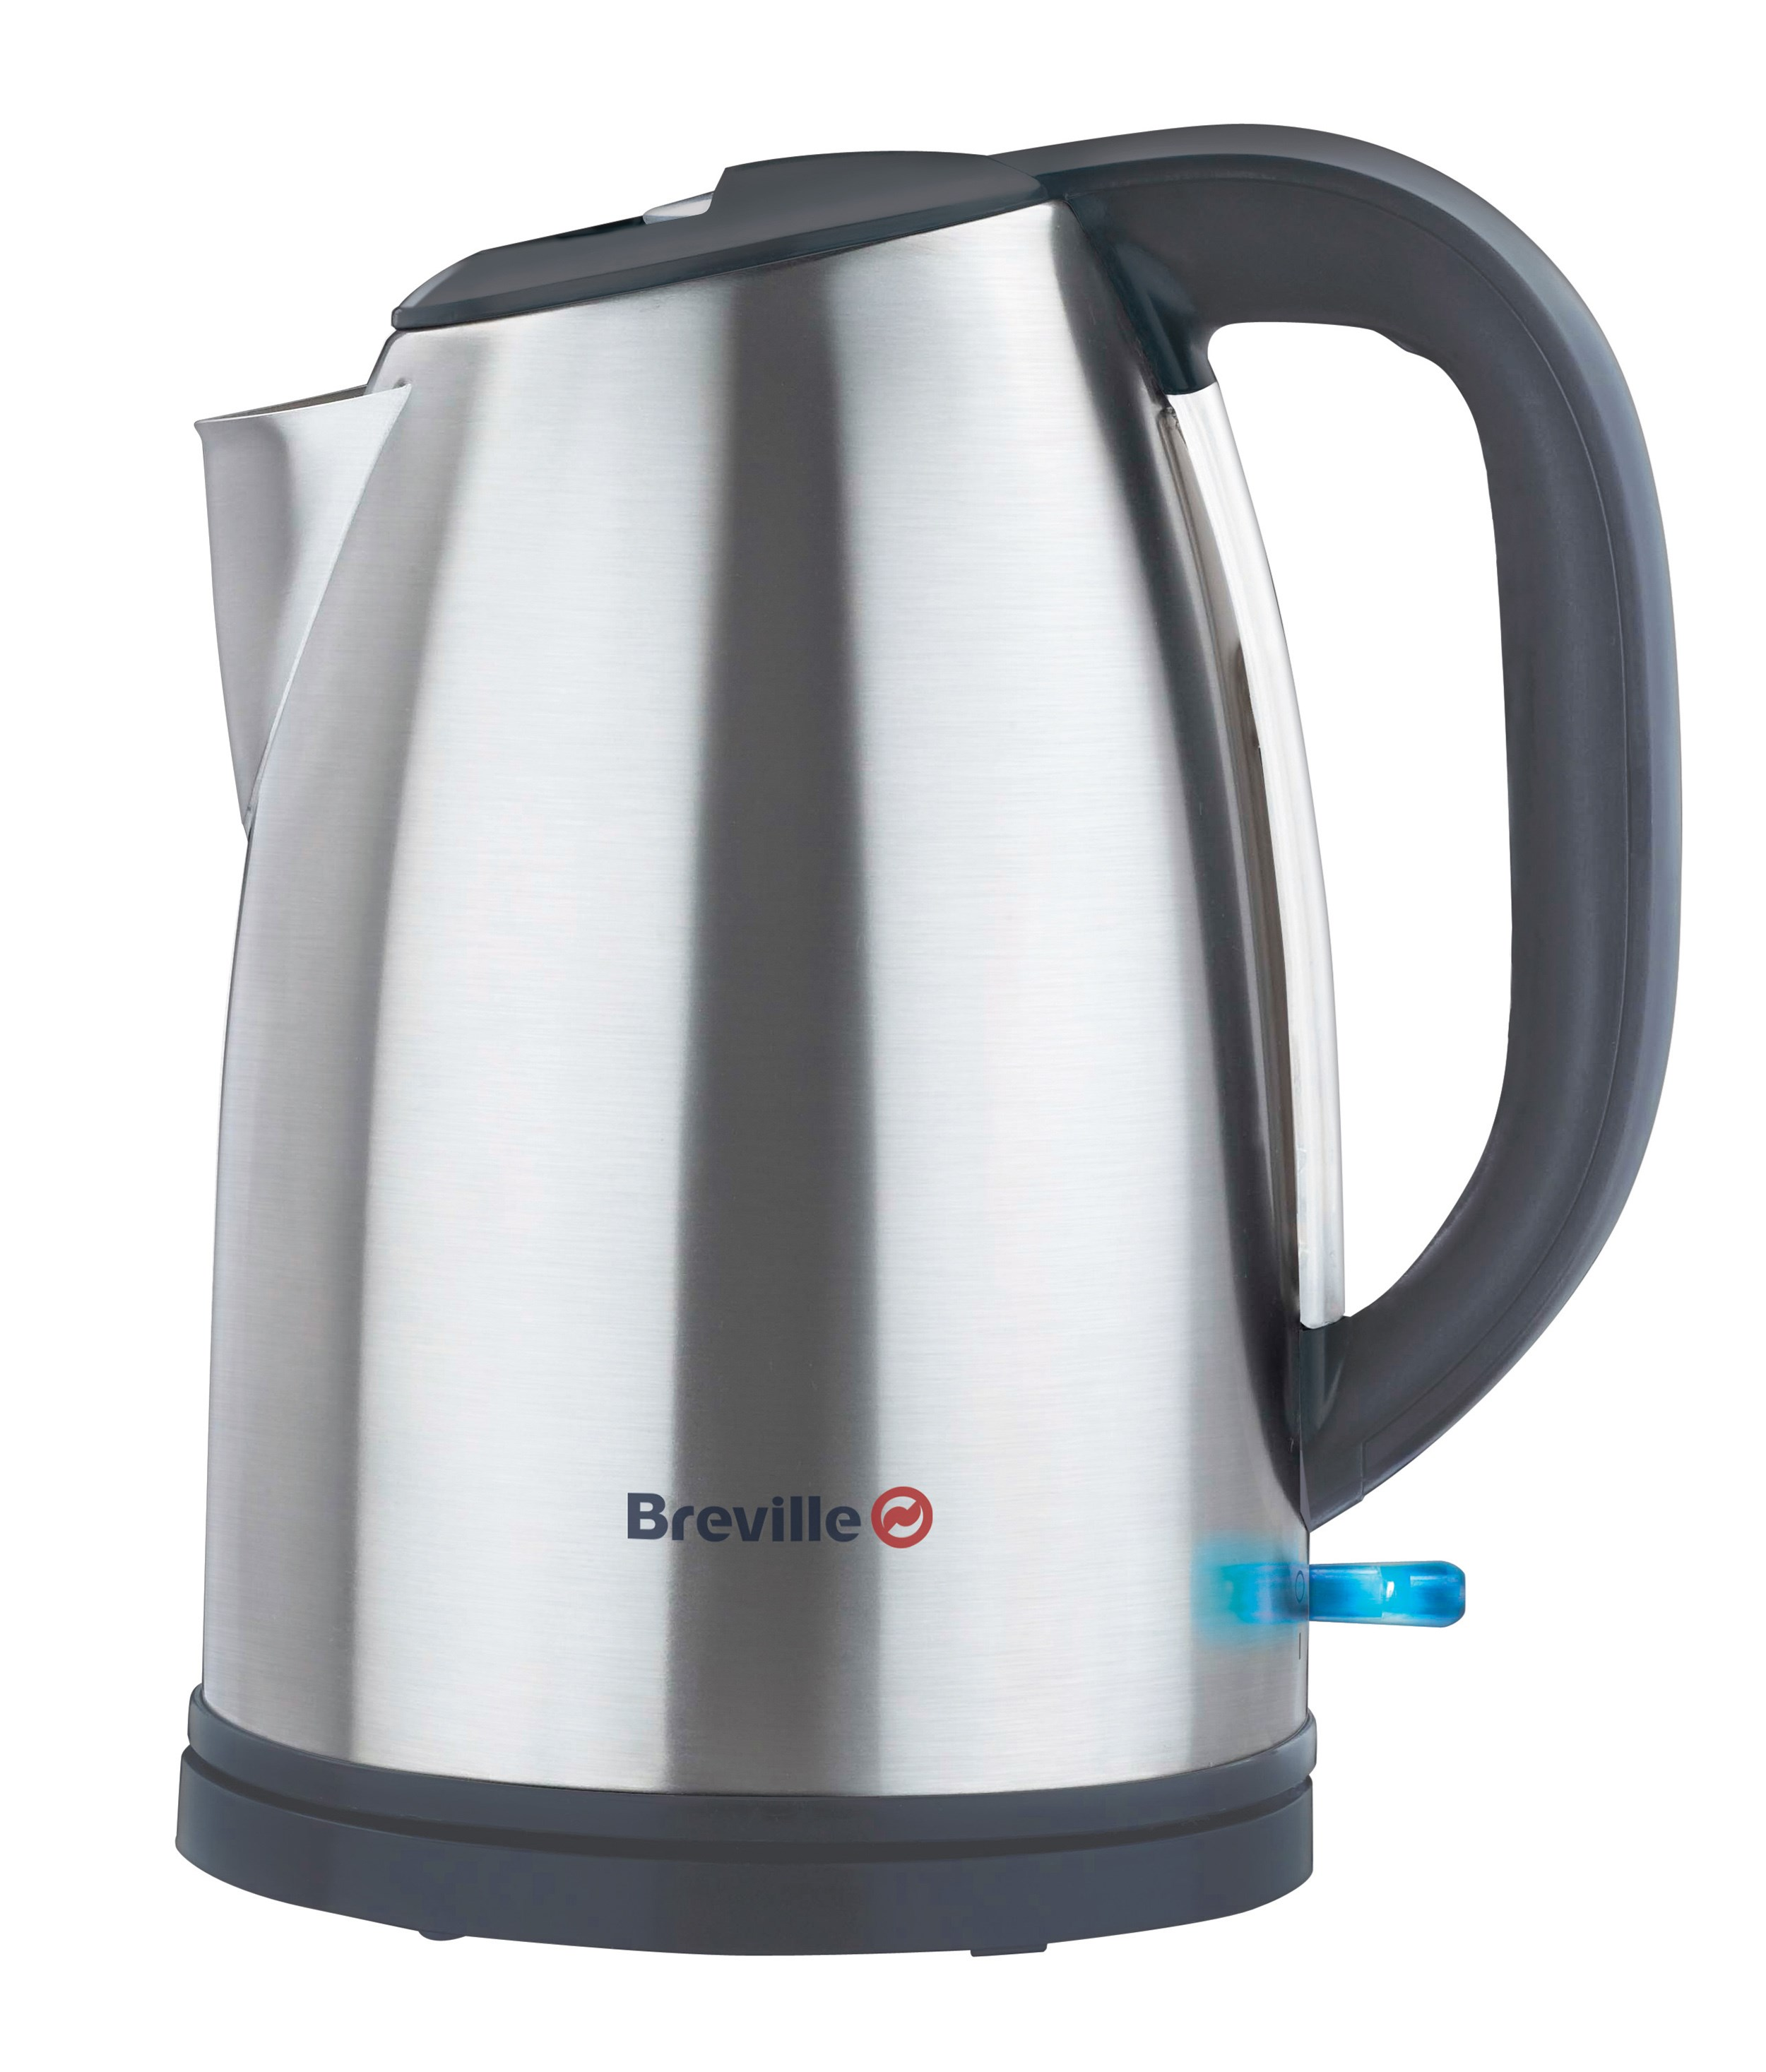 Breville  VKJ685 Brushed Stainless Steel Kettle - 1.7 Litre